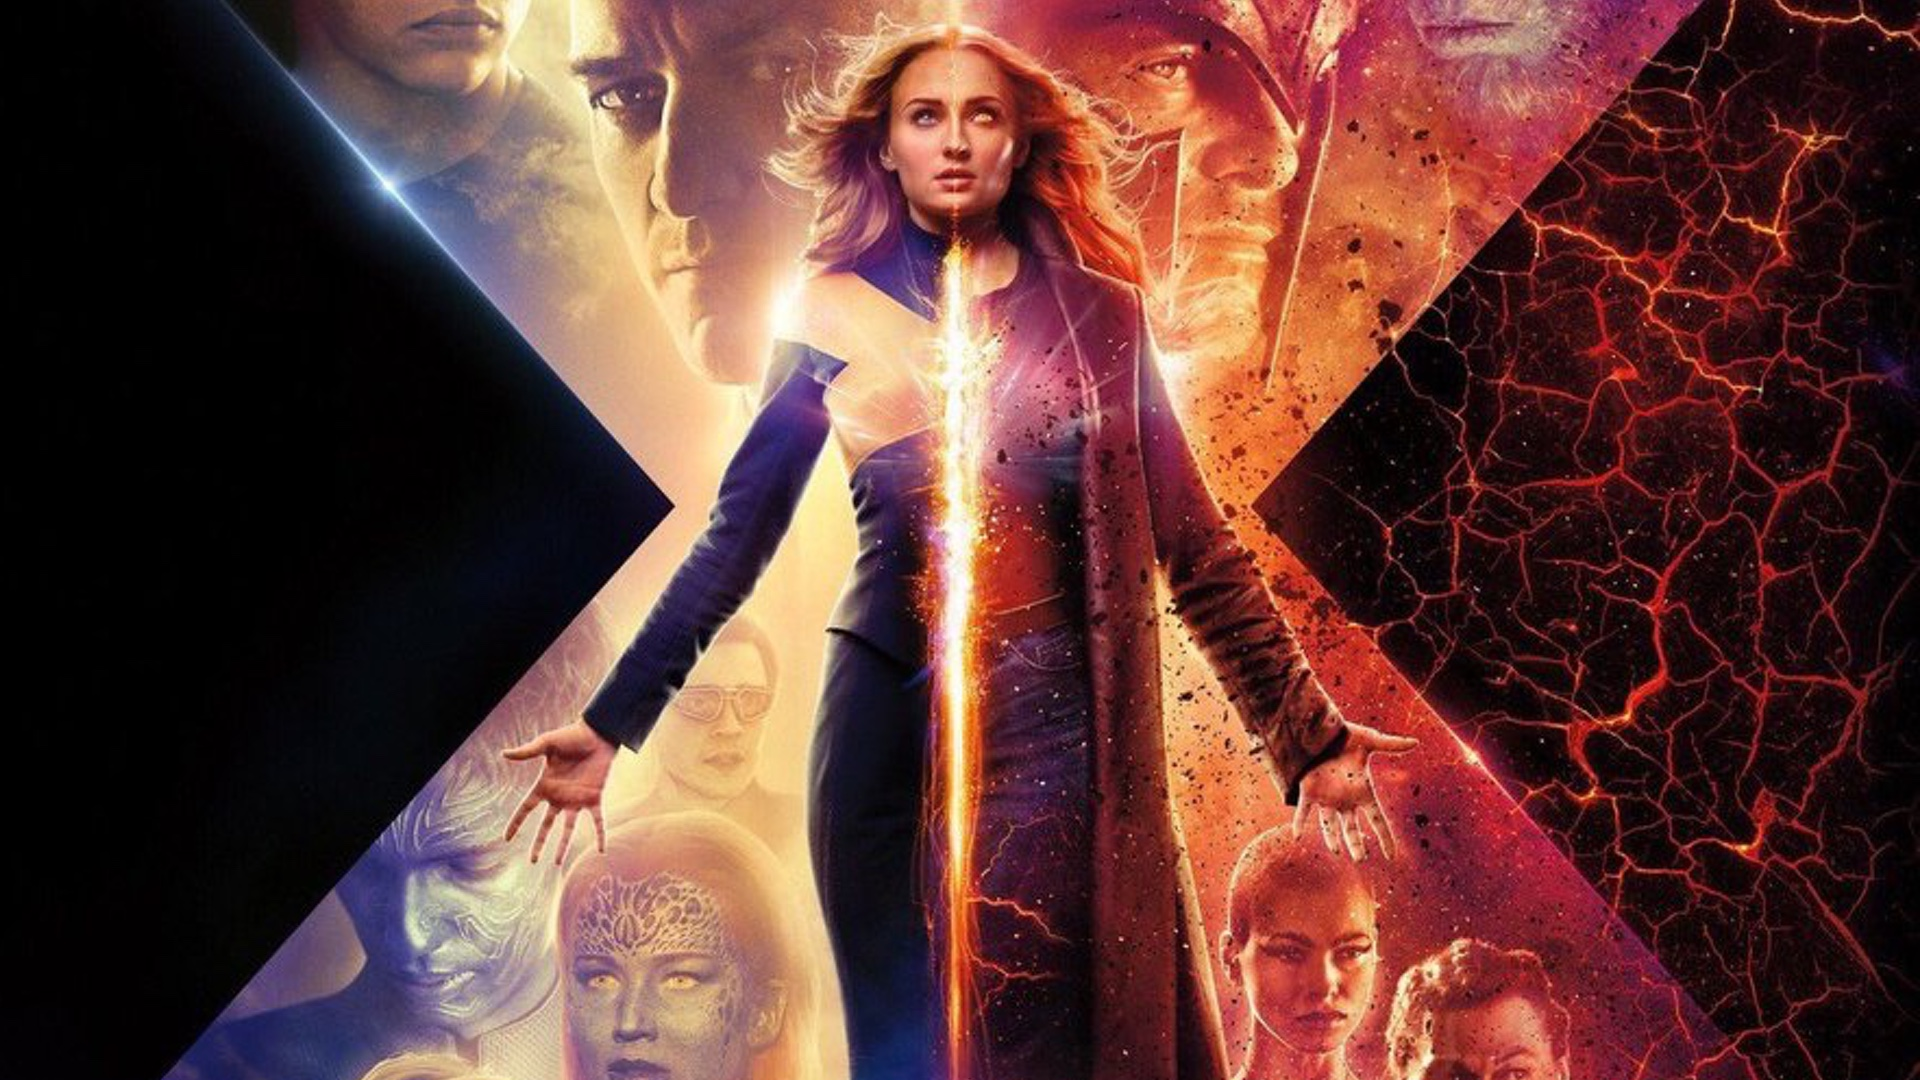 X Men Dark Phoenix The Emotional Story Of A Divided Hero A